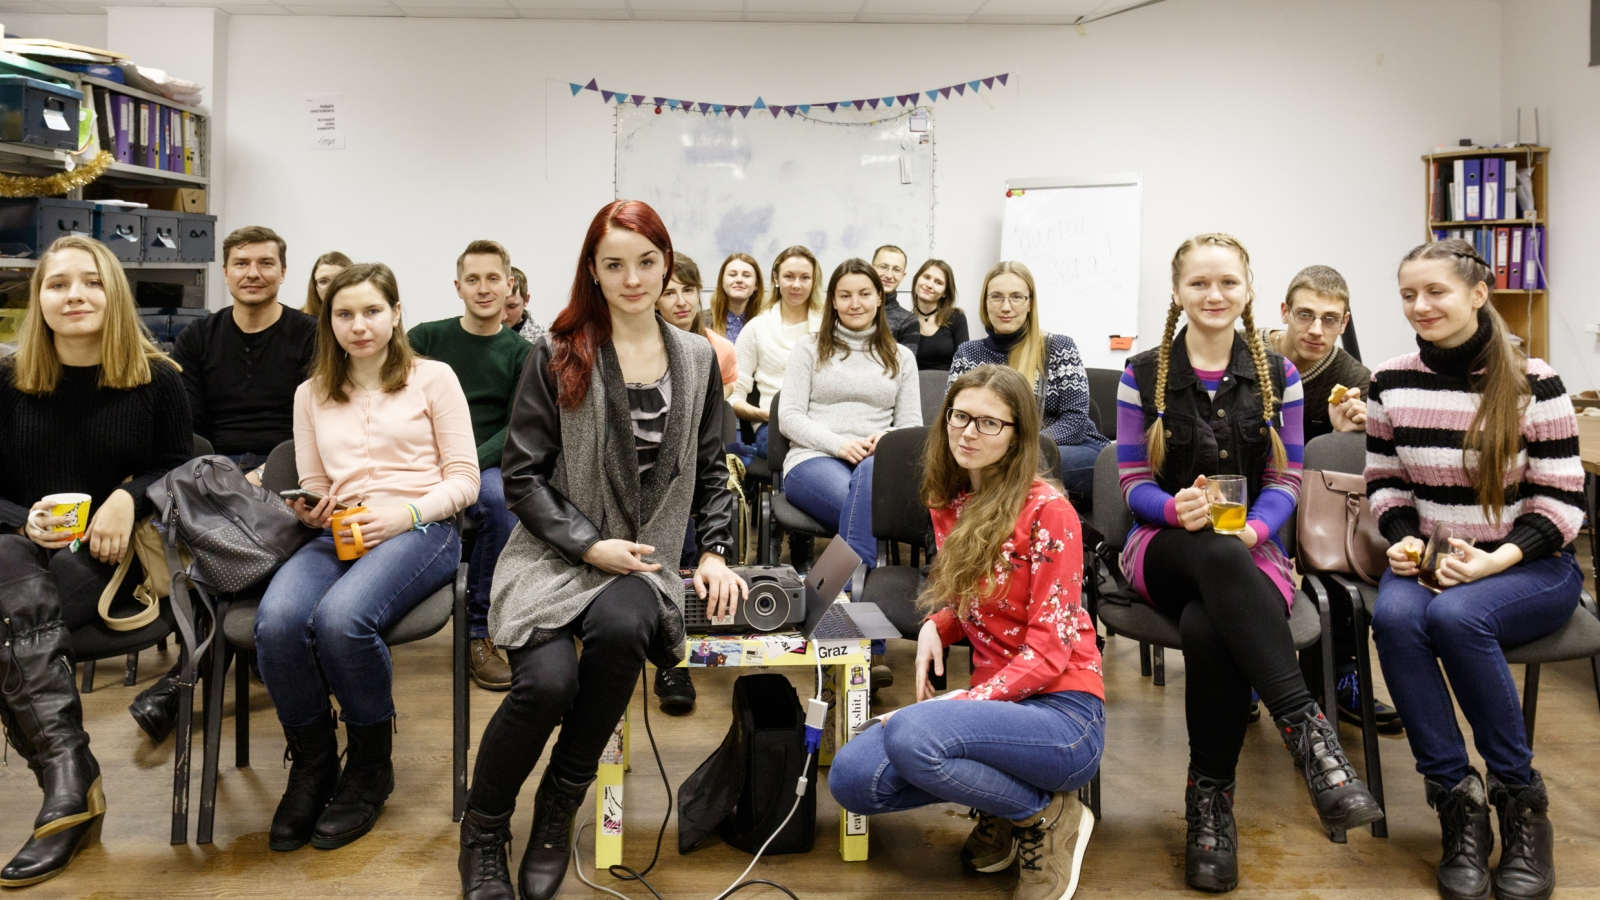 Evgeniya Dubeshhuk promotes critical thinking and active role in society among young people